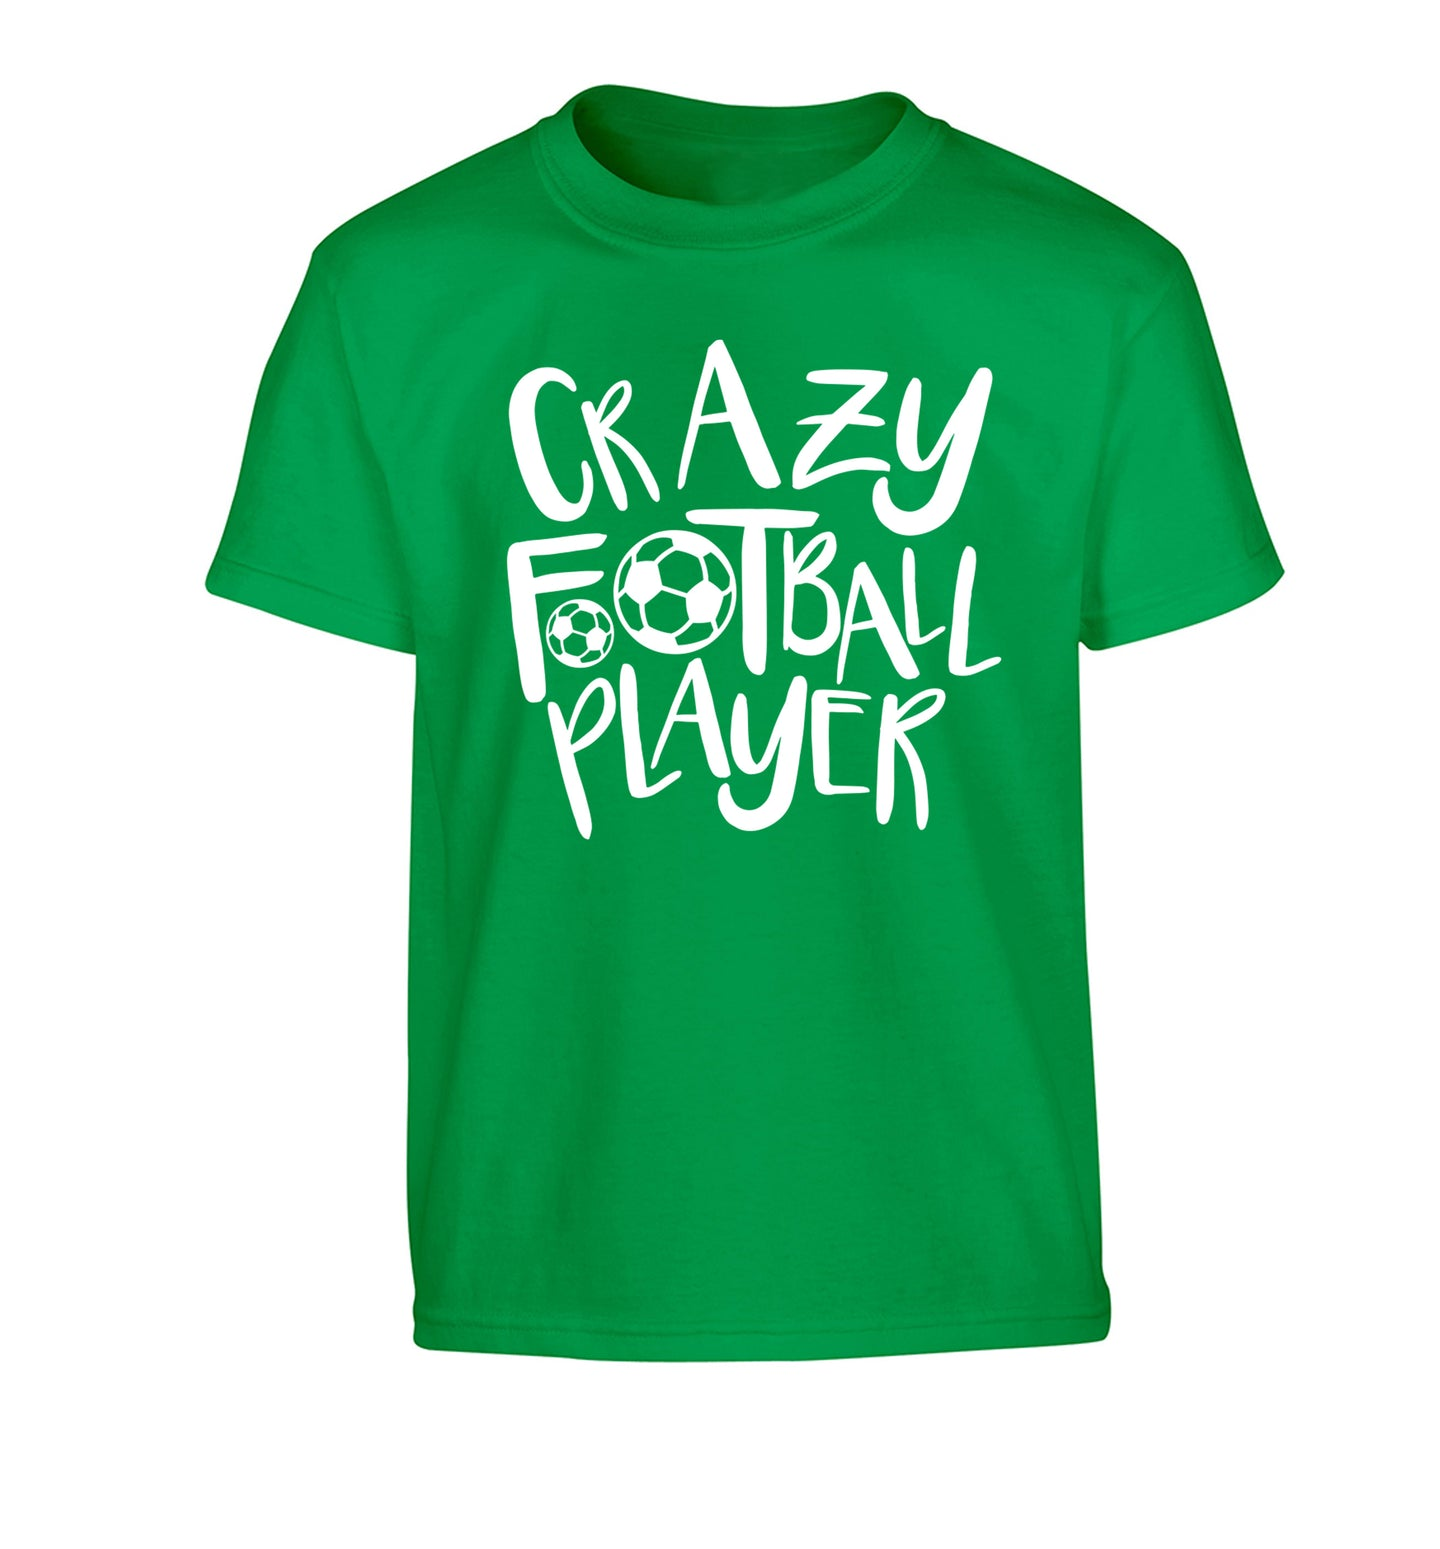 Crazy football player Children's green Tshirt 12-14 Years